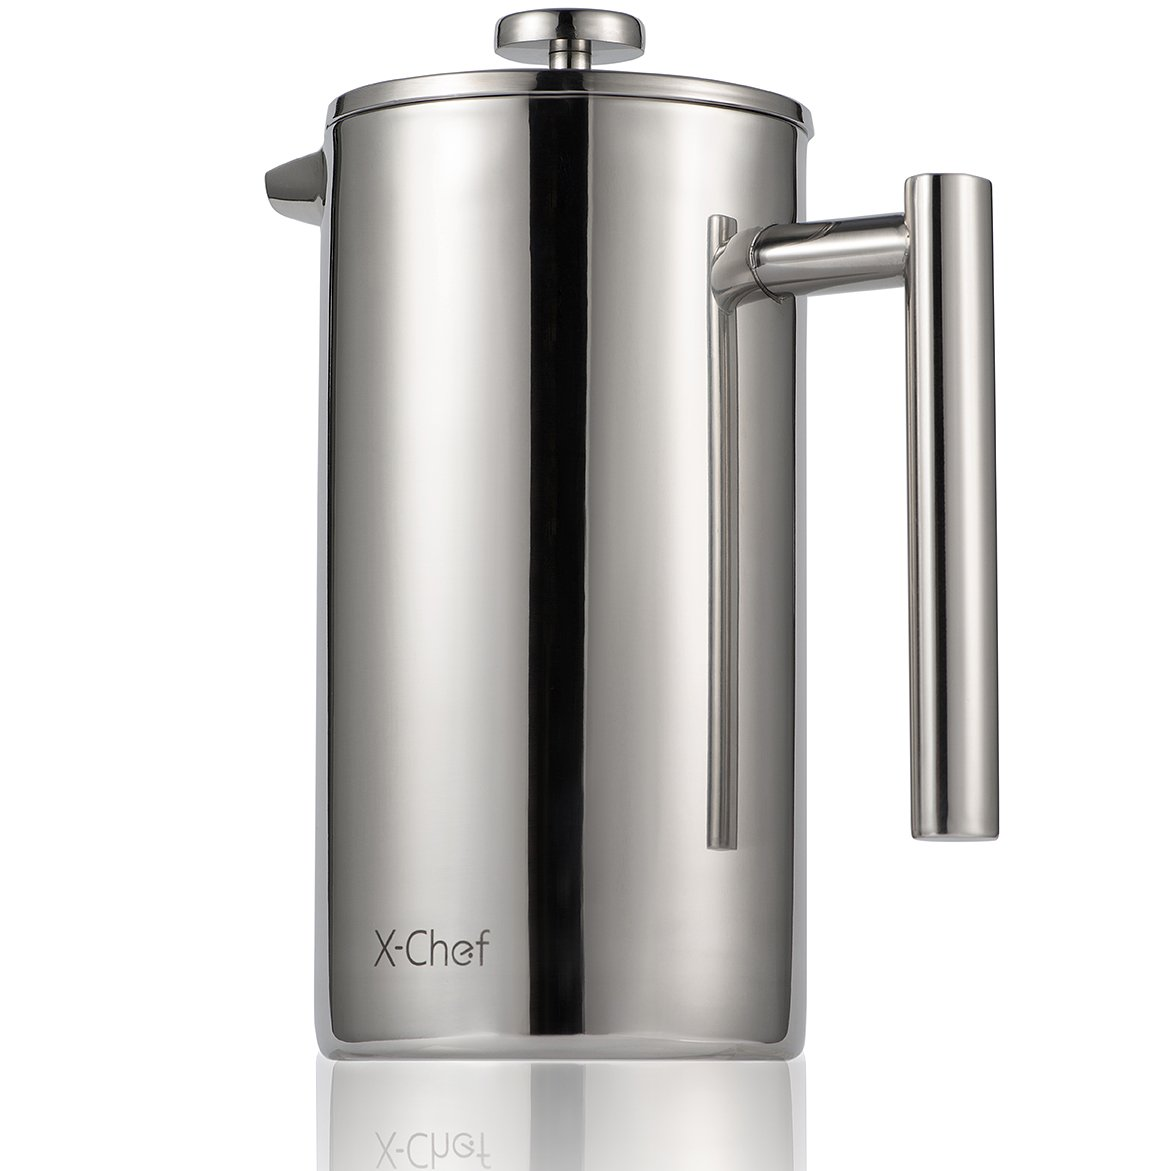 Palm French Press Coffee Maker : The MotherHOOD: Meal Prep: Iced Chai Tea Concentrate Recipe